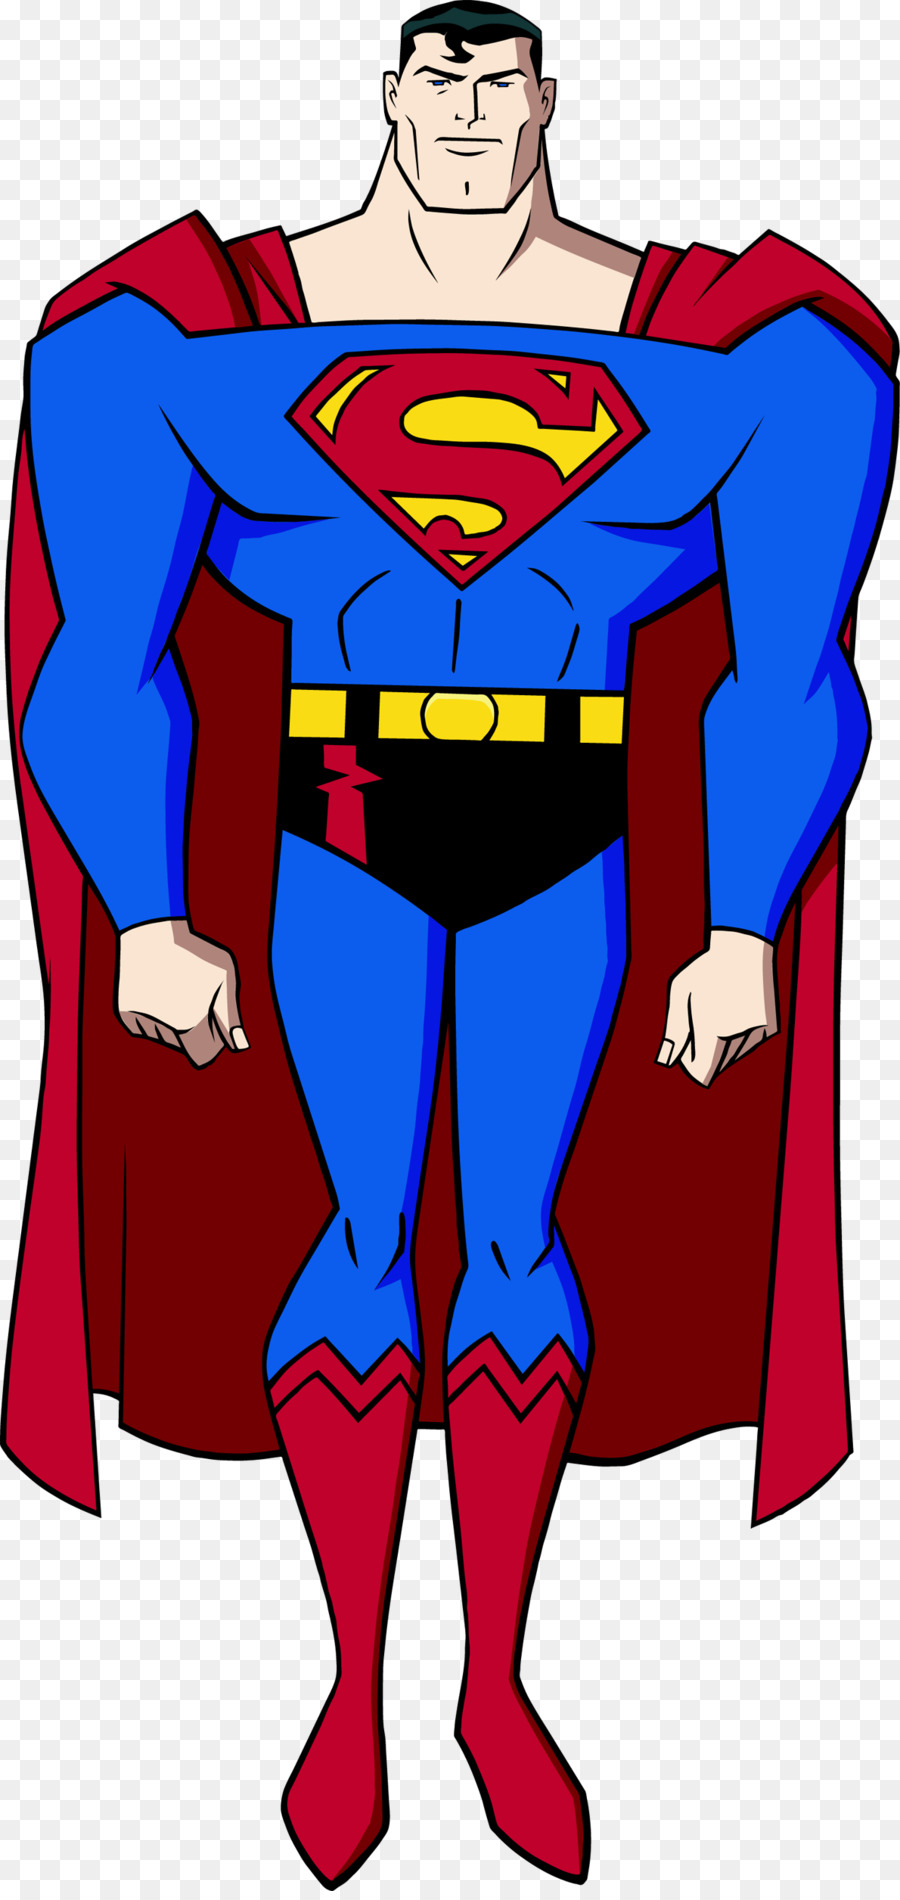 900x1900 Superman Logo Batman Clark Kent Clip Art